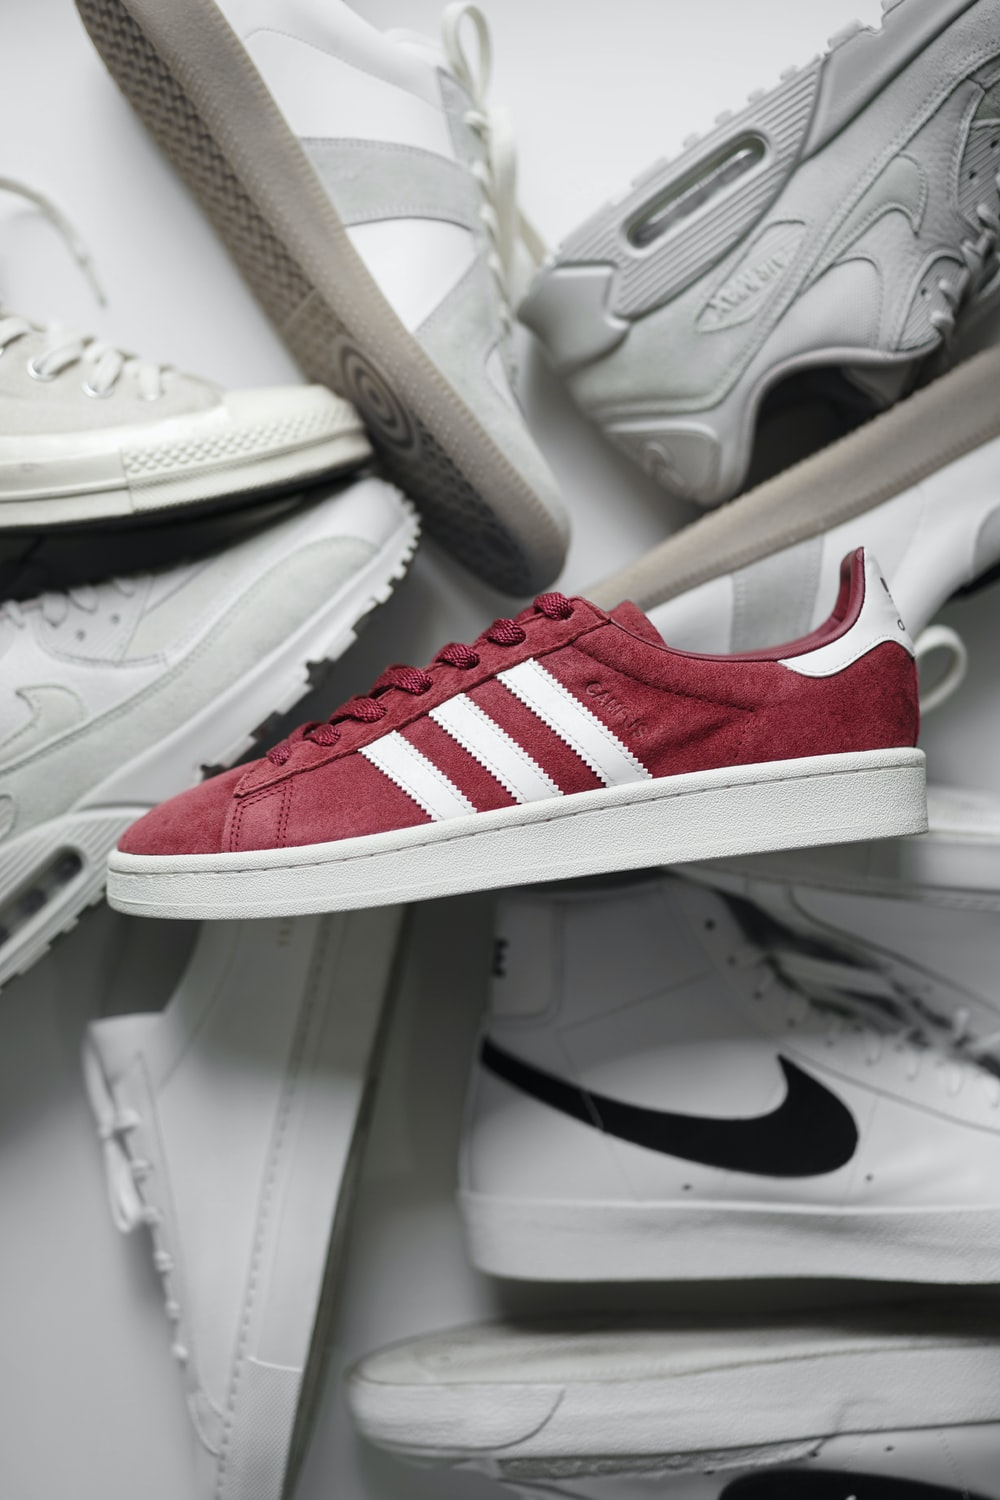 red and white adidas low top sneakers